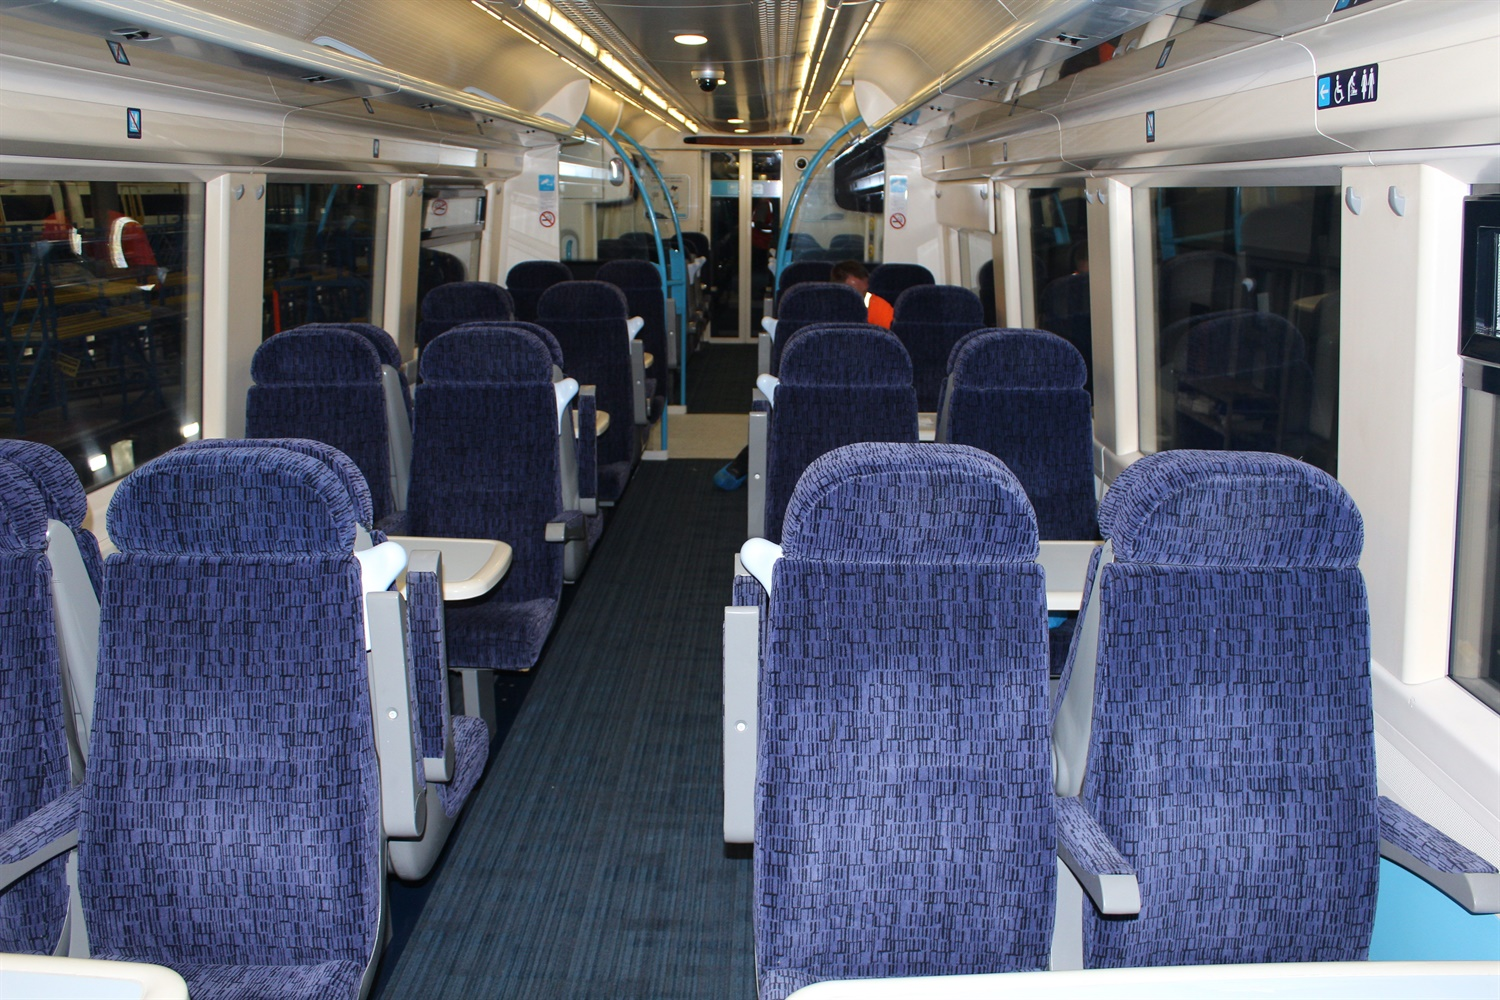 Interior of a refurbished Class 375 train